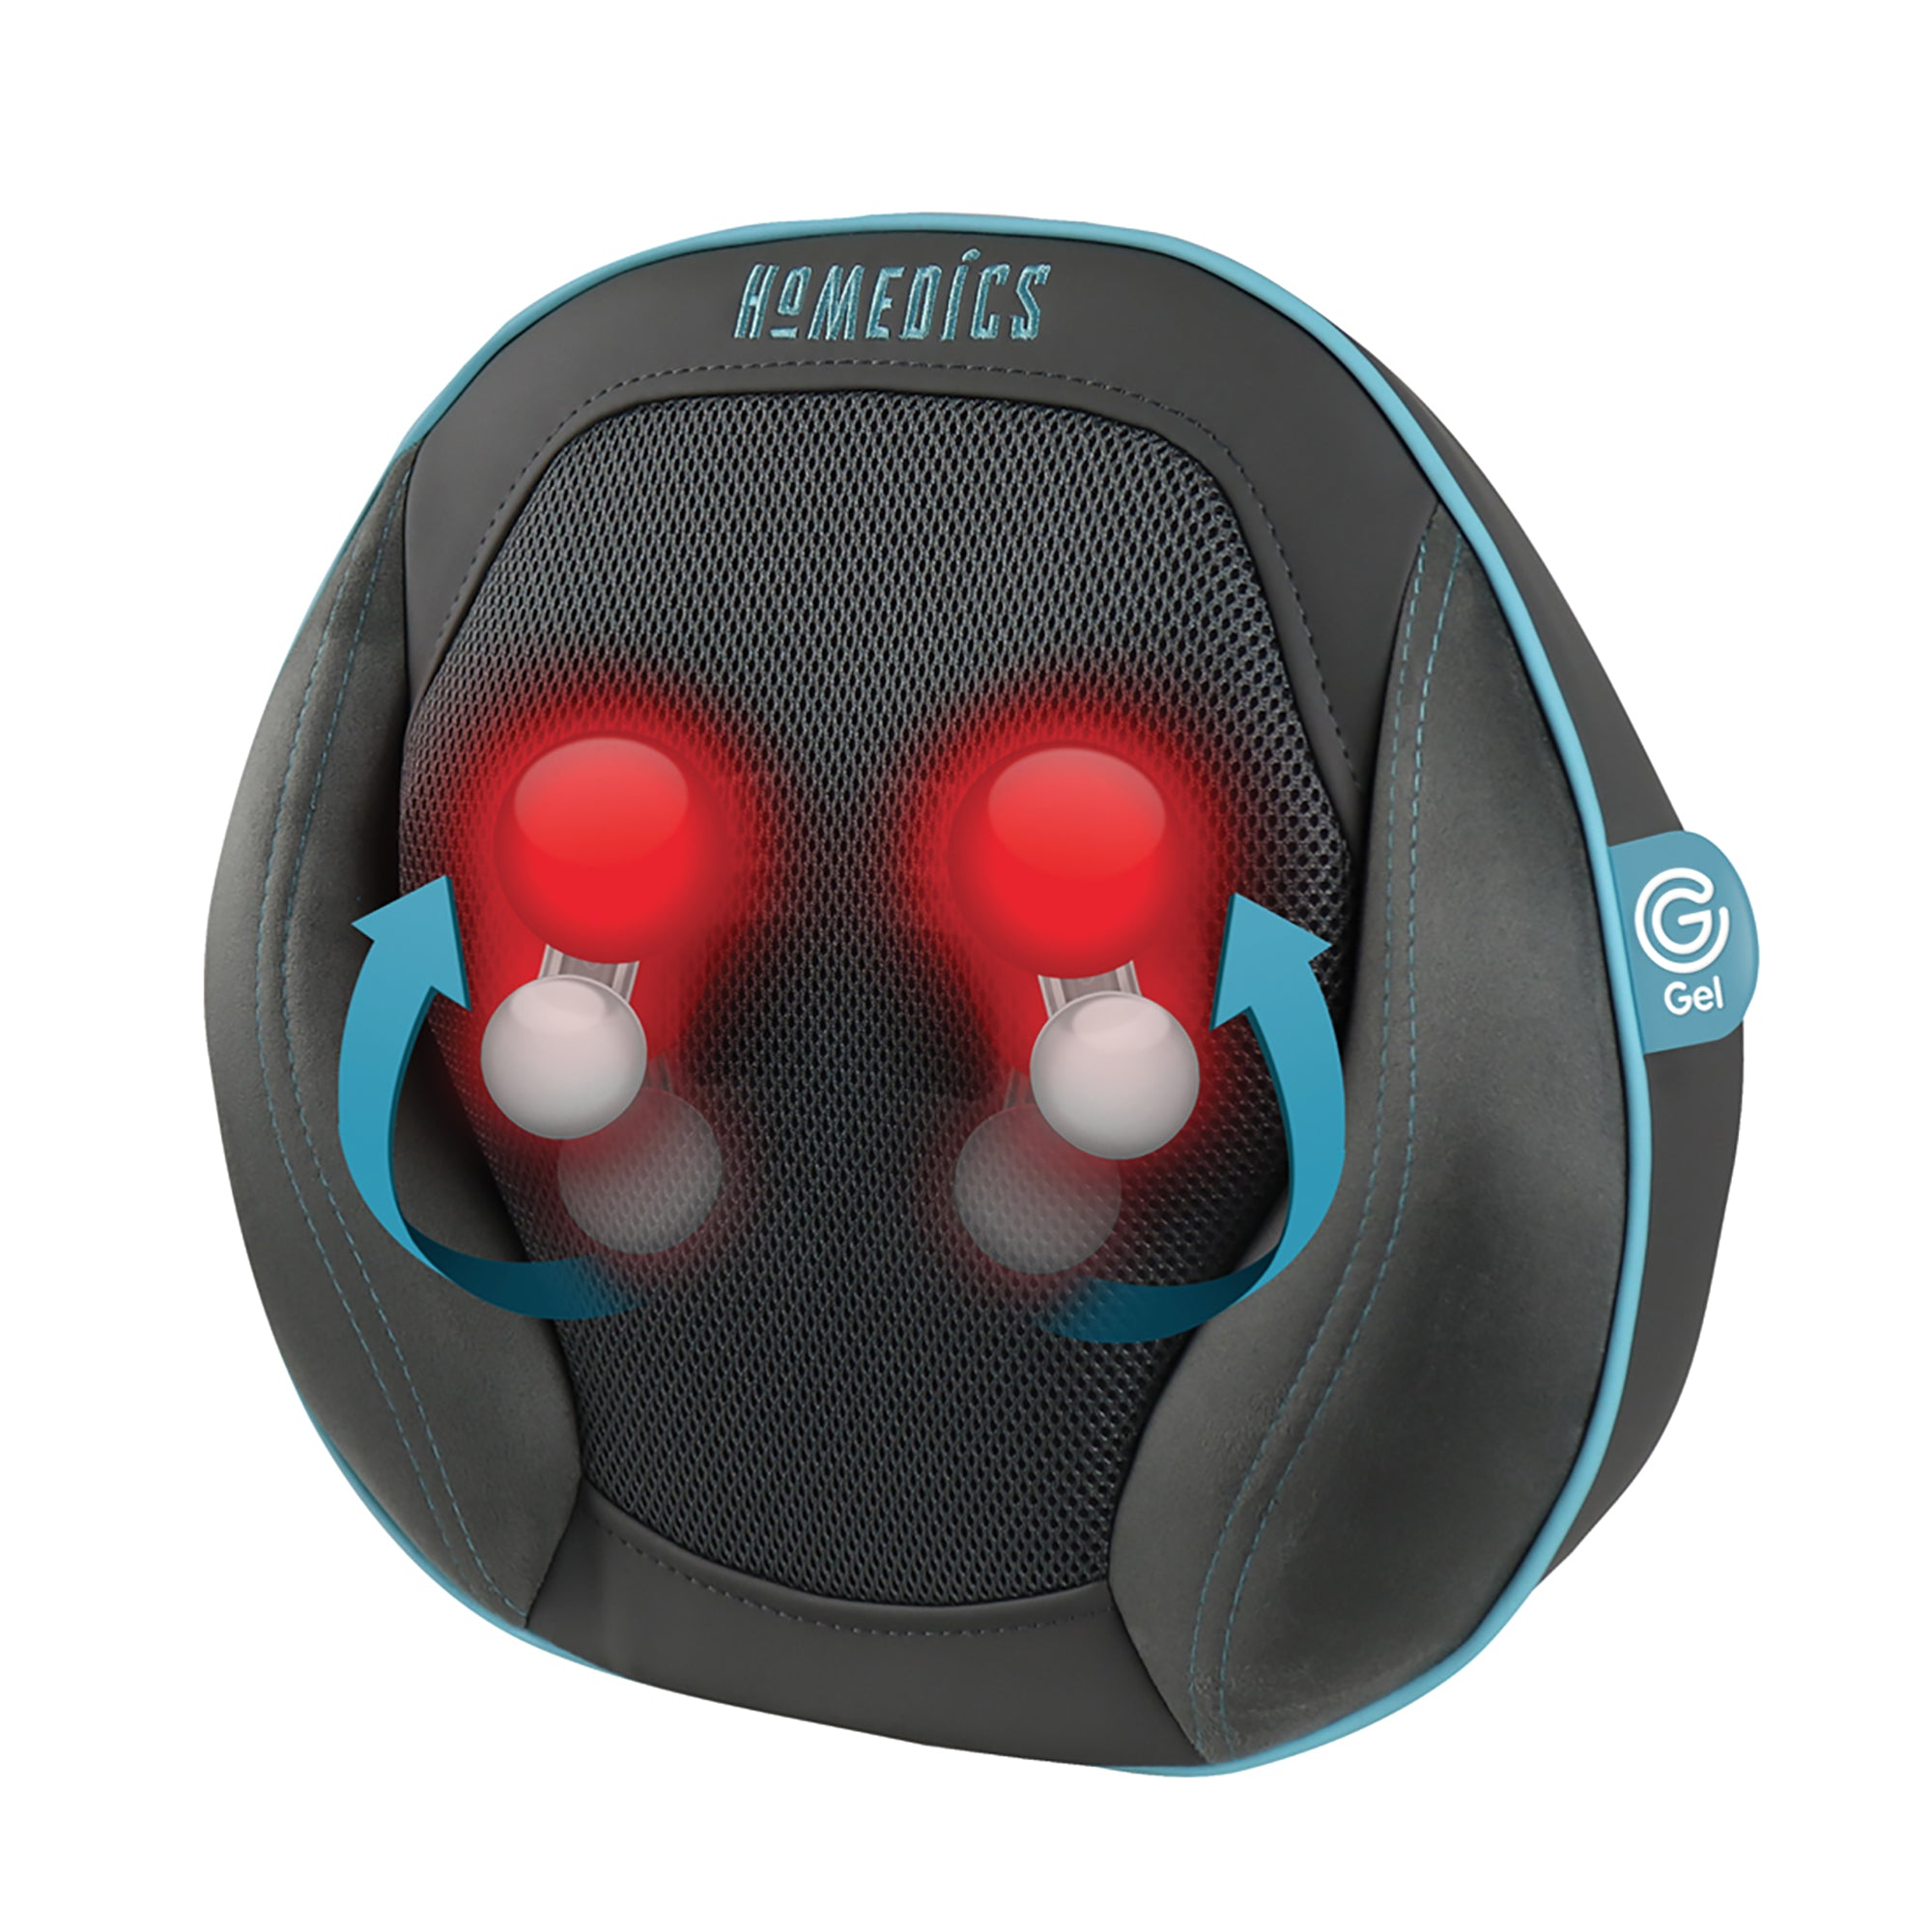 HoMedics Gel Shiatsu Massagekissen